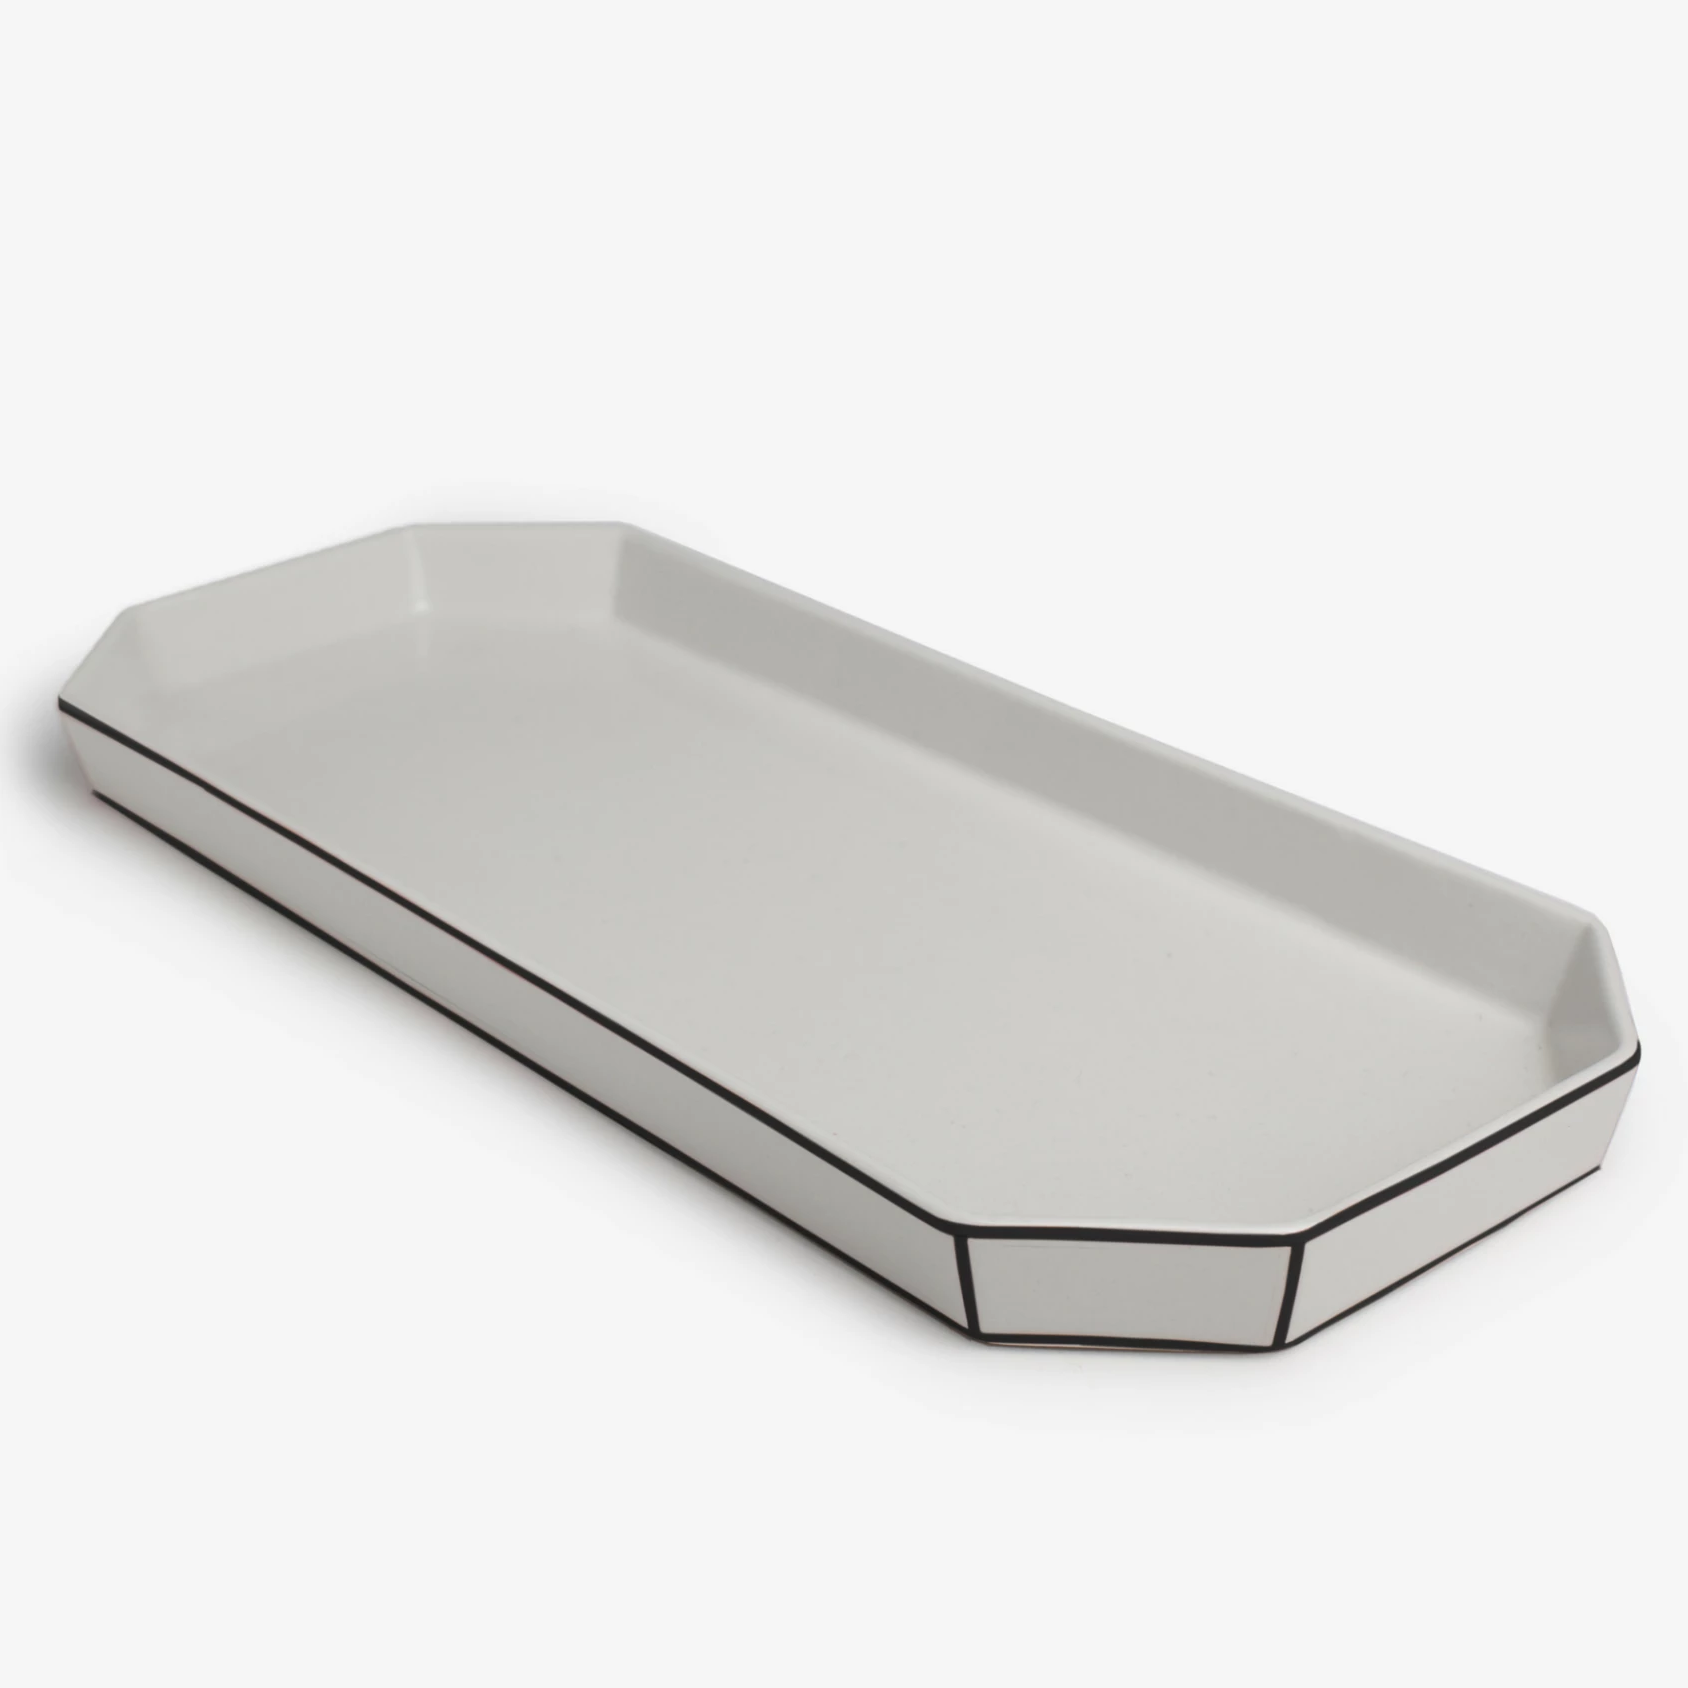 Porcelain Tray Black Detail